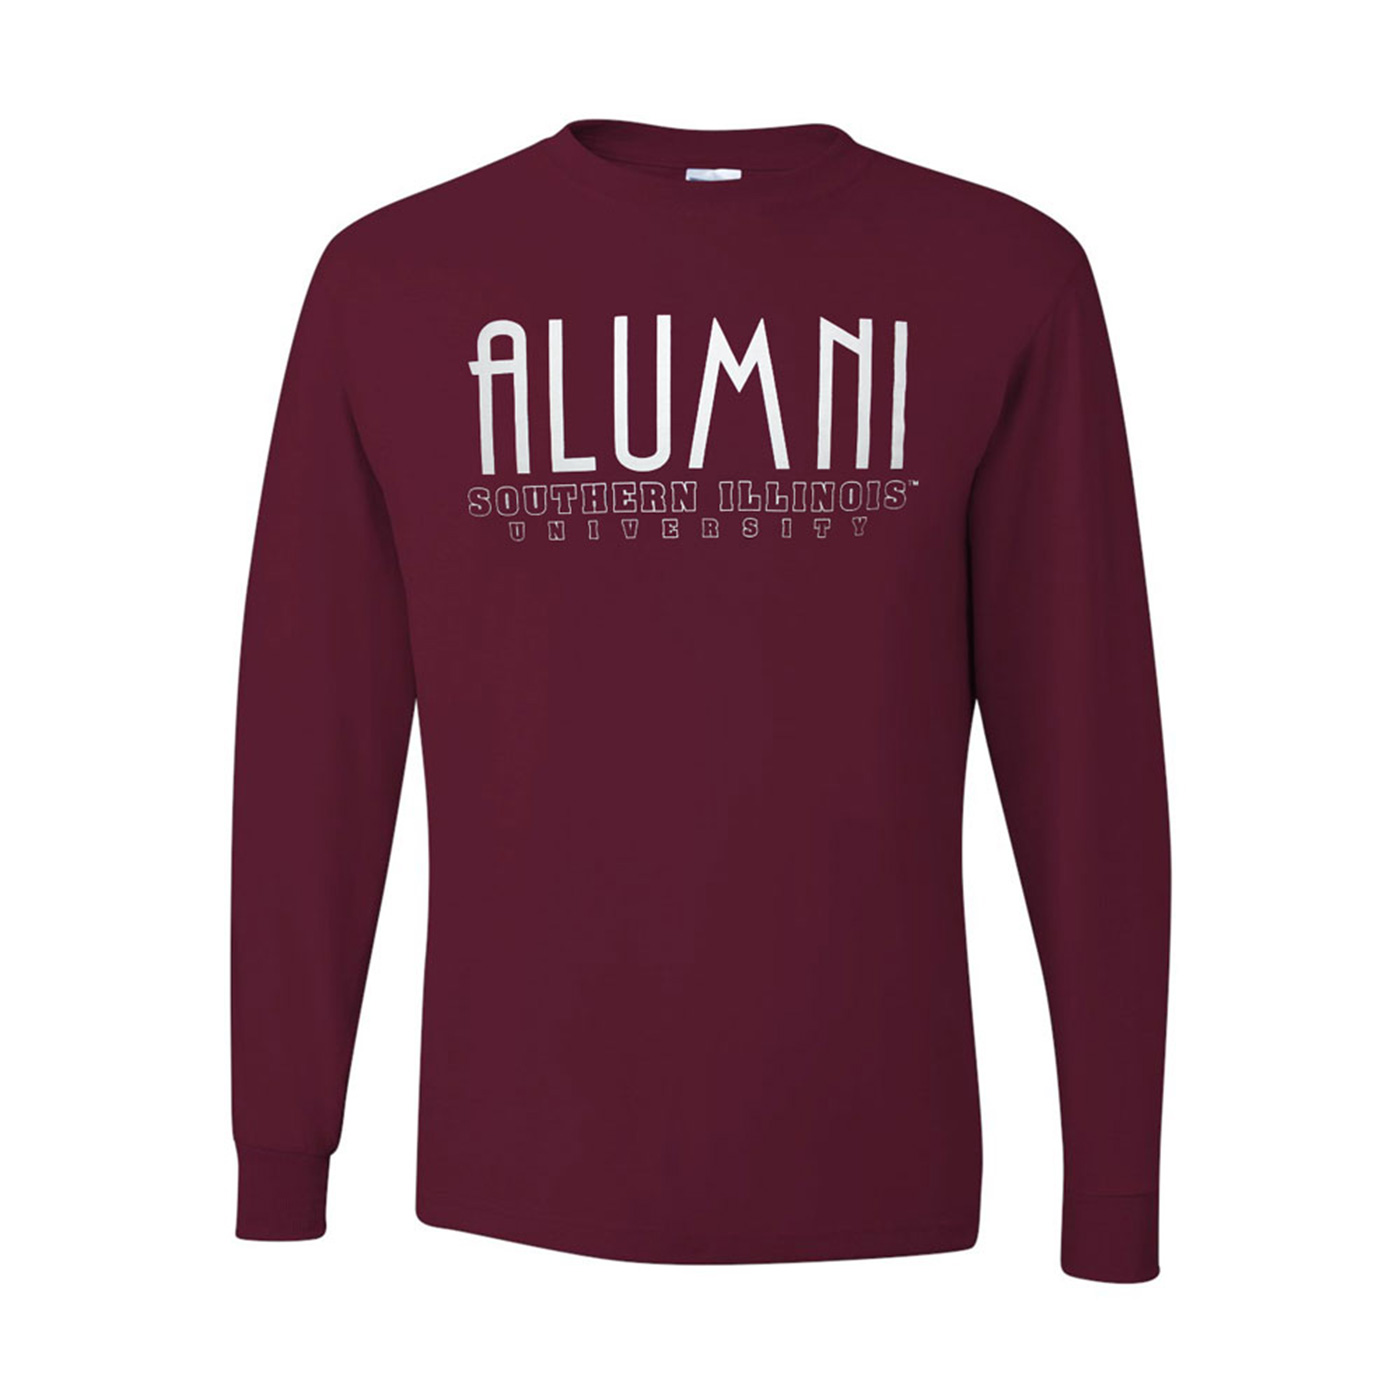 Image for the 710 BRANDED® SOUTHERN ILLINOIS ALUMNI SCRIPT LONG SLEEVE T-SHIRT product